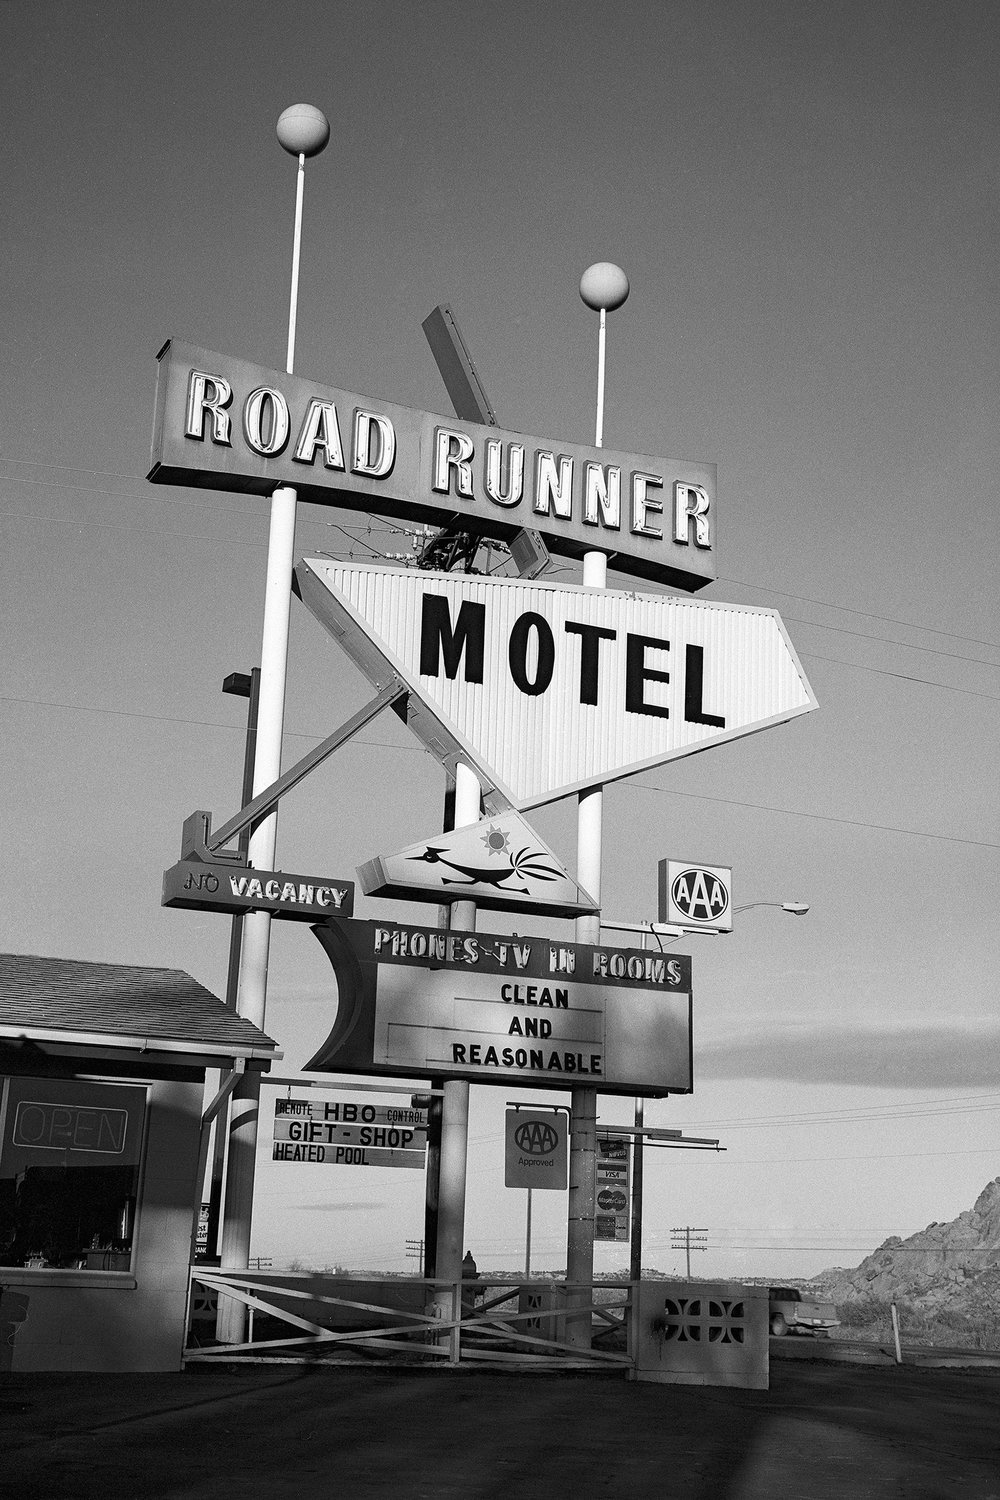 ROAD RUNNER MOTEL ROUTE 66